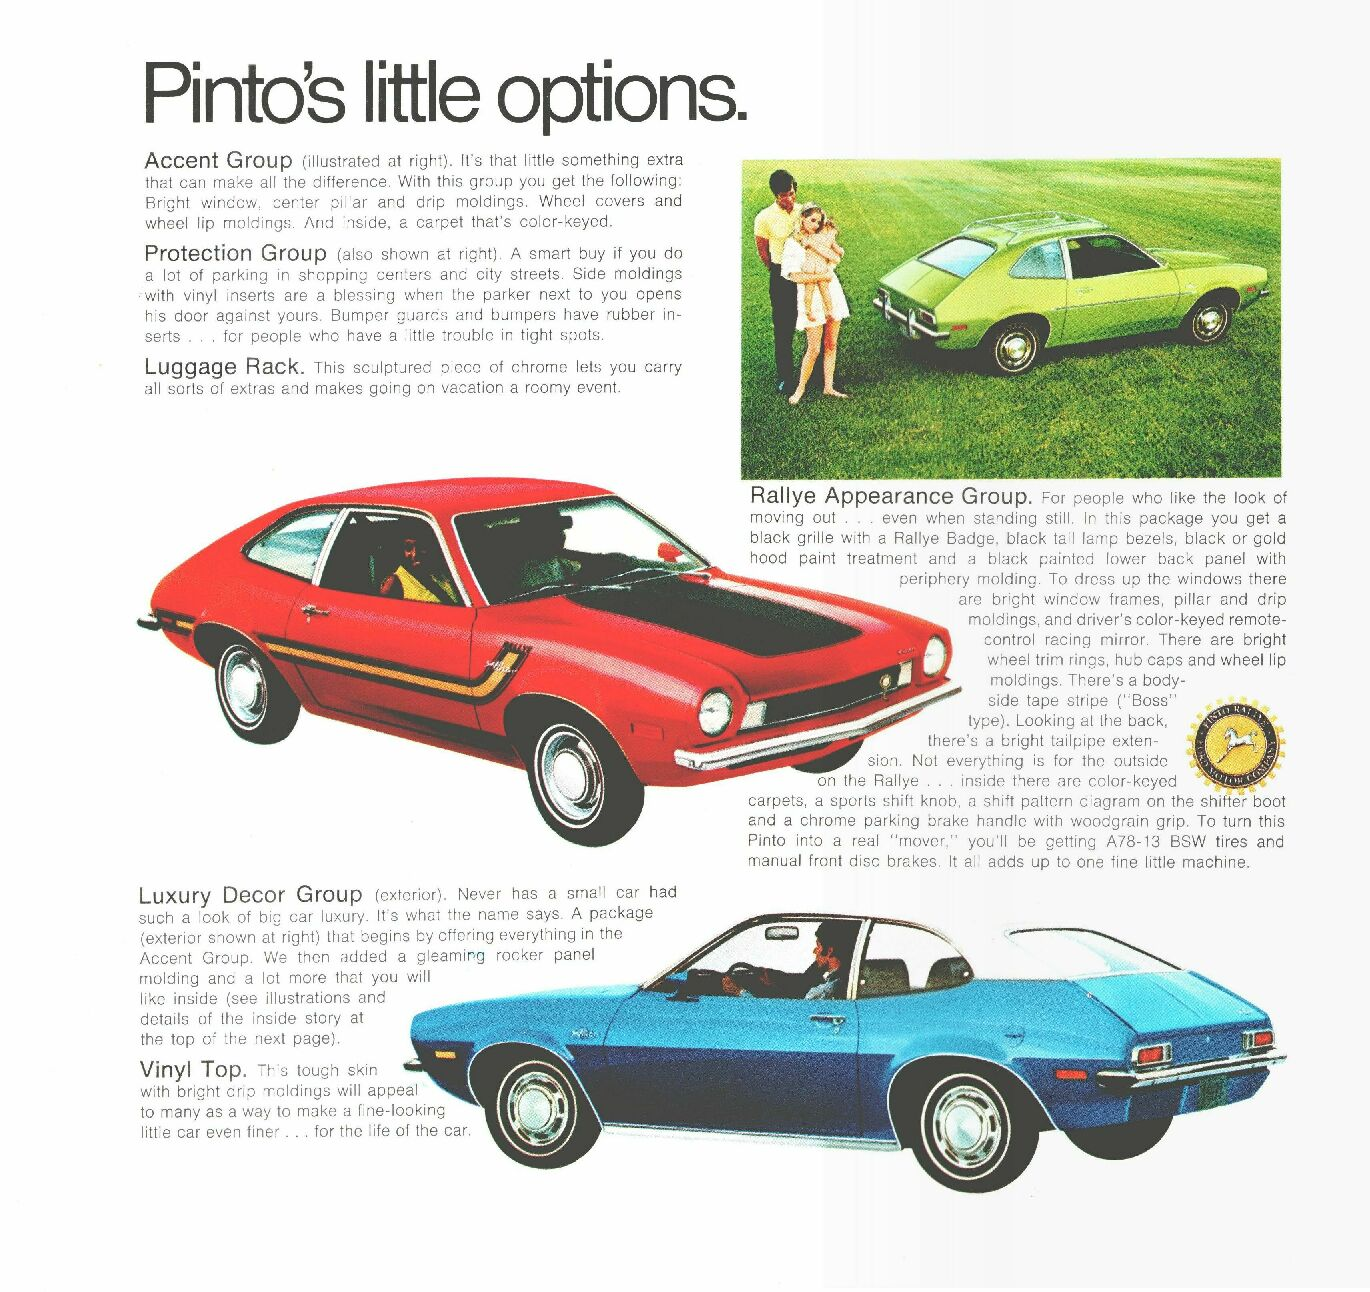 Ford Pinto Sedans And Ford: Ford Pinto 1970